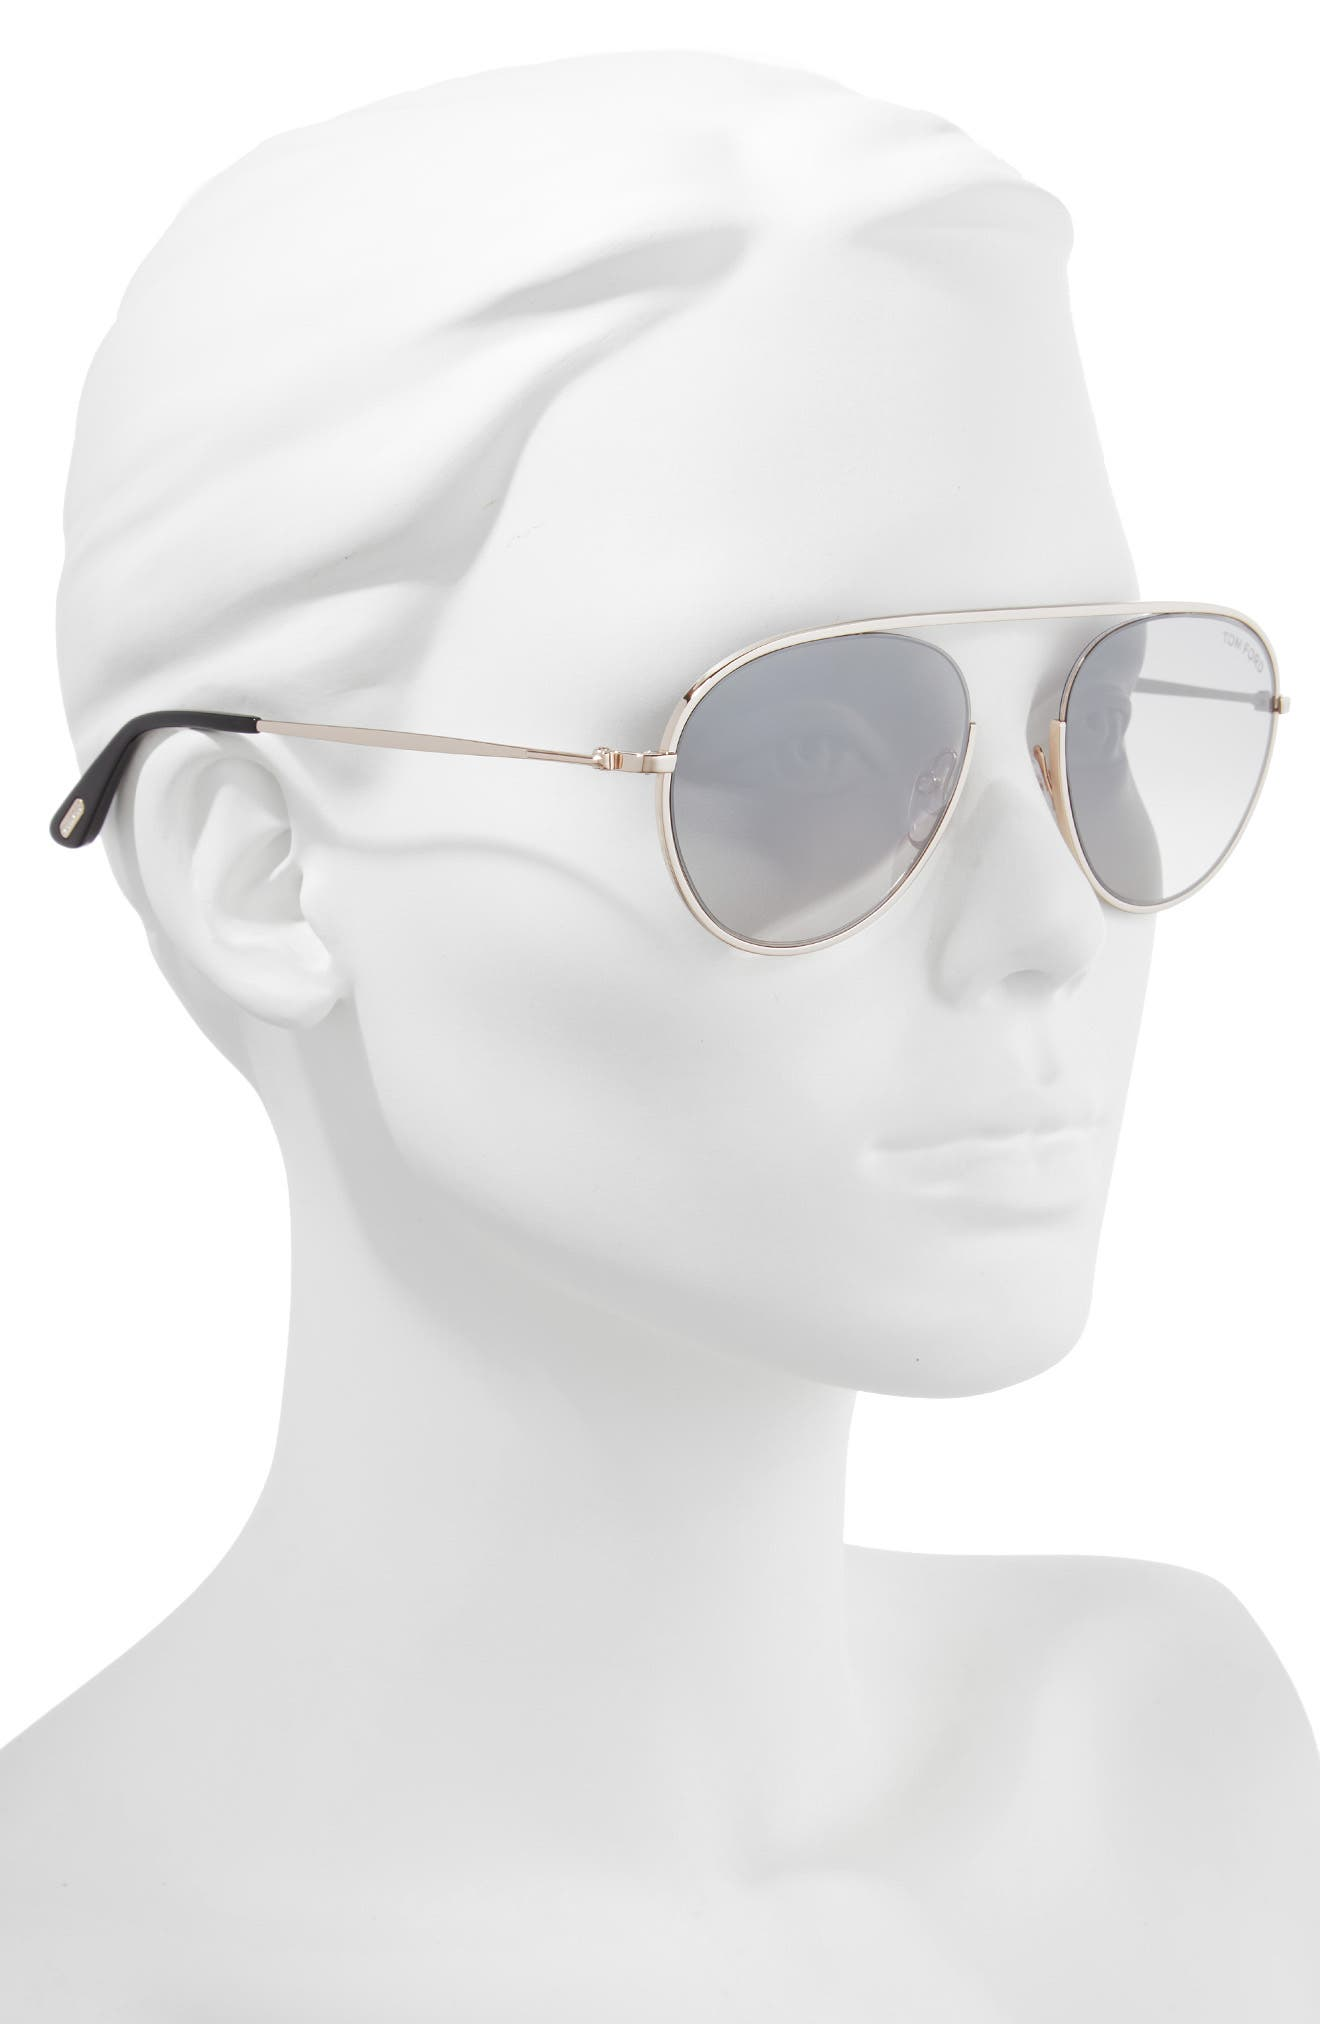 Keith 55mm Metal Aviator Sunglasses,                             Alternate thumbnail 2, color,                             ROSE GOLD/ SMOKE/ SILVER